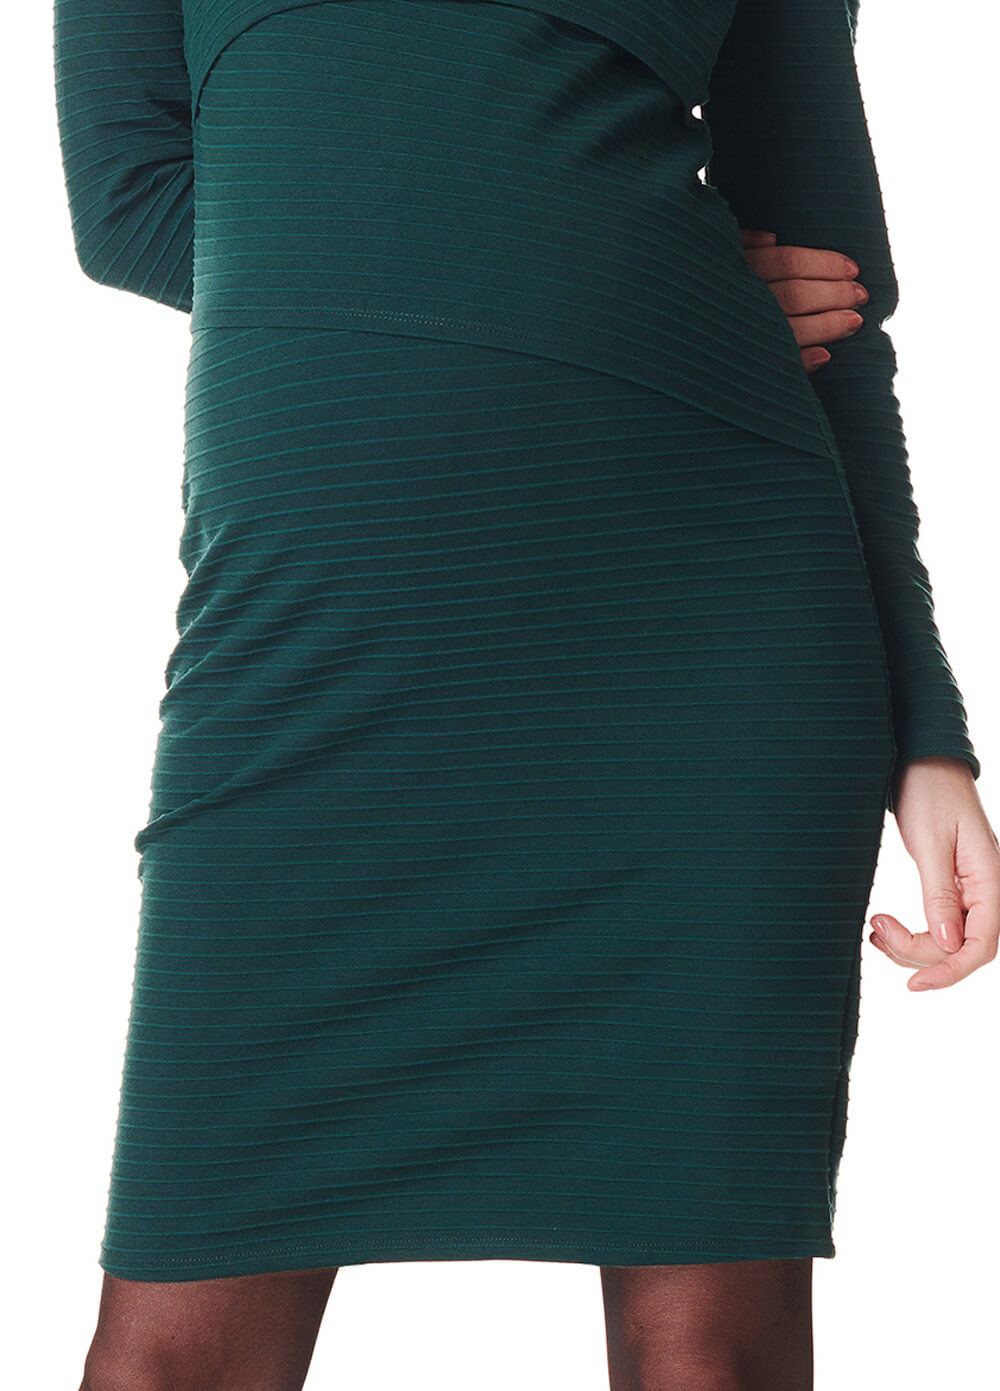 Lina Panelled Maternity & Nursing Dress in Green by Noppies